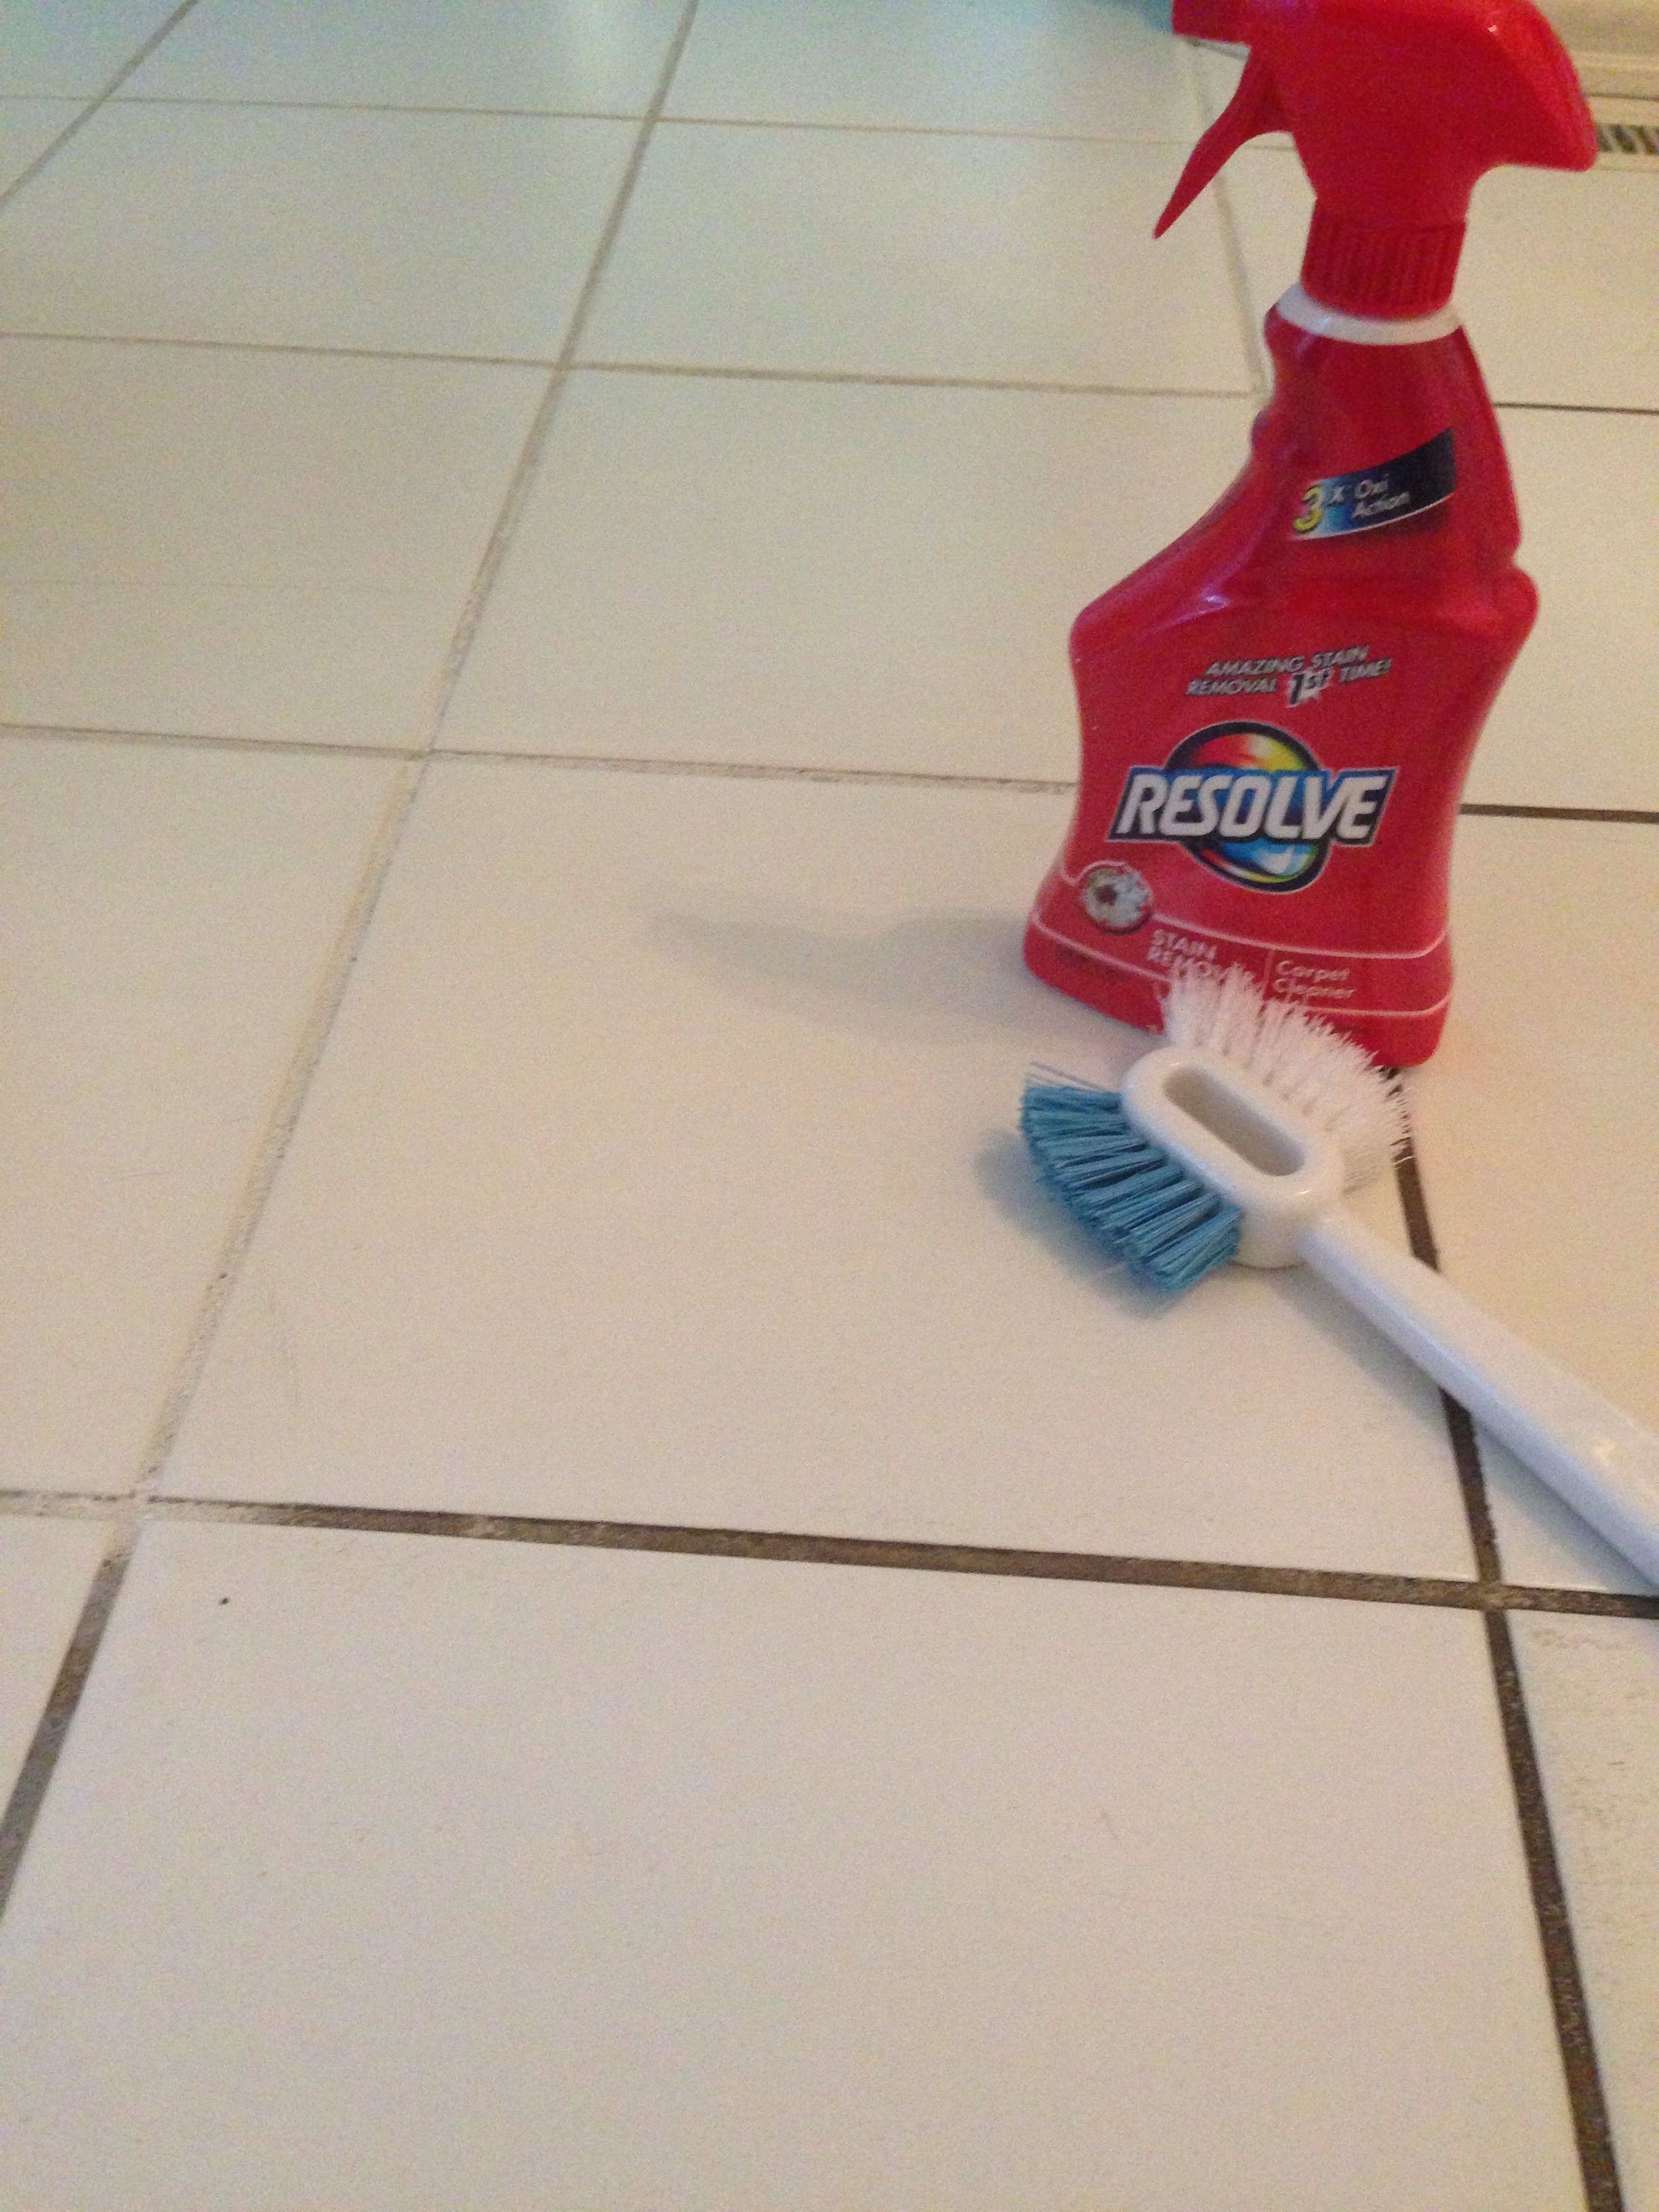 Resolve carpet cleaner to clean grout hydrogen peroxide grout and i have been wanting to clean the grout between our kitchen tiles for the longest time dailygadgetfo Images